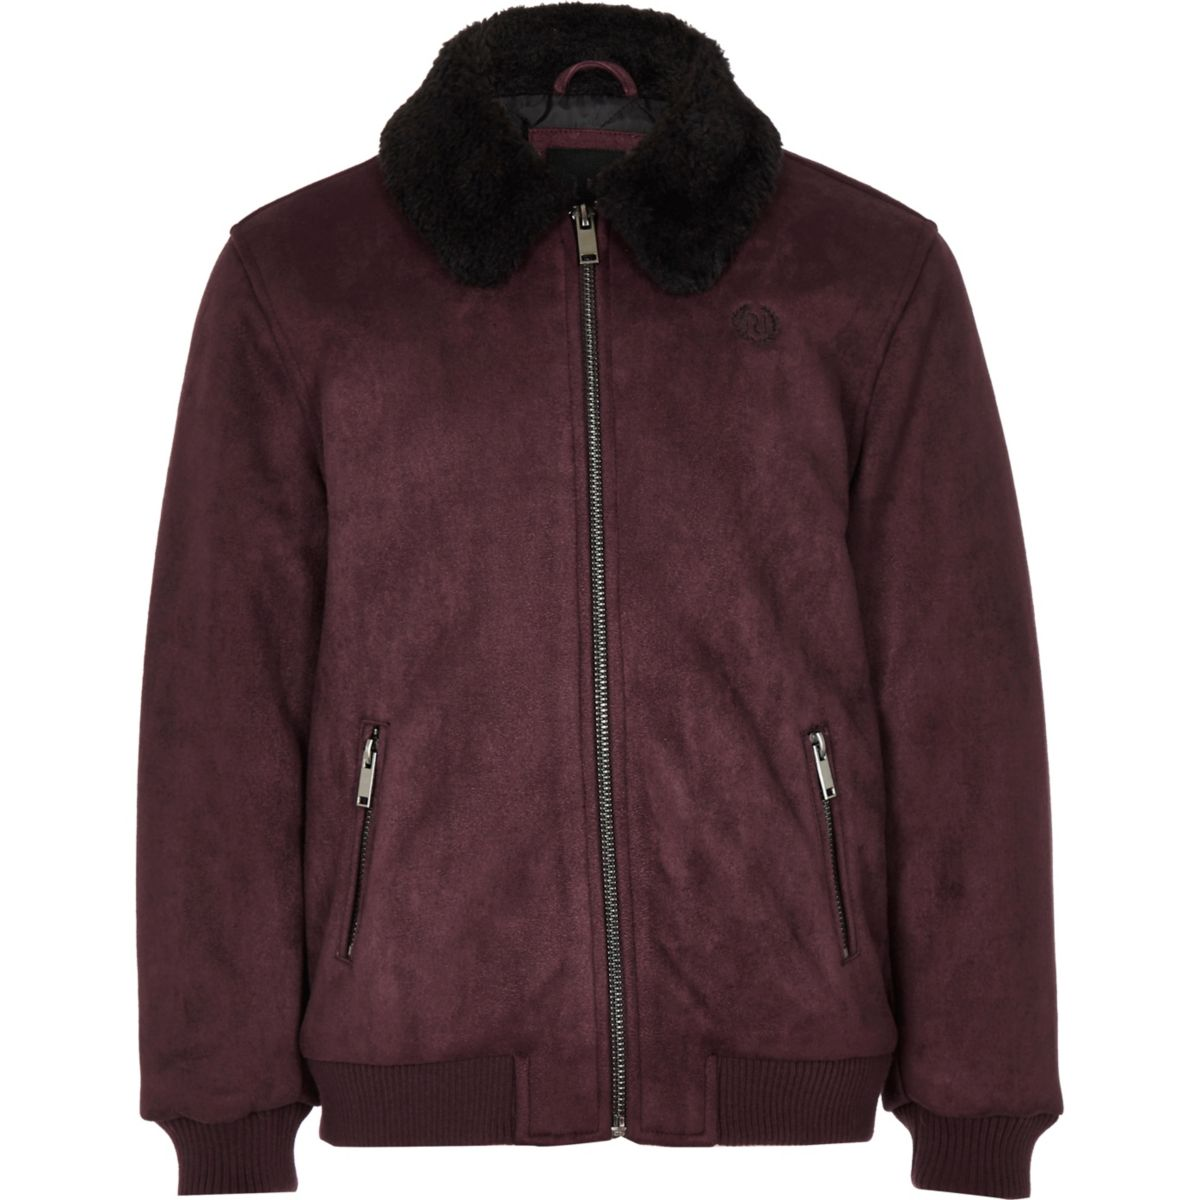 Boys burgundy fleece suede jacket